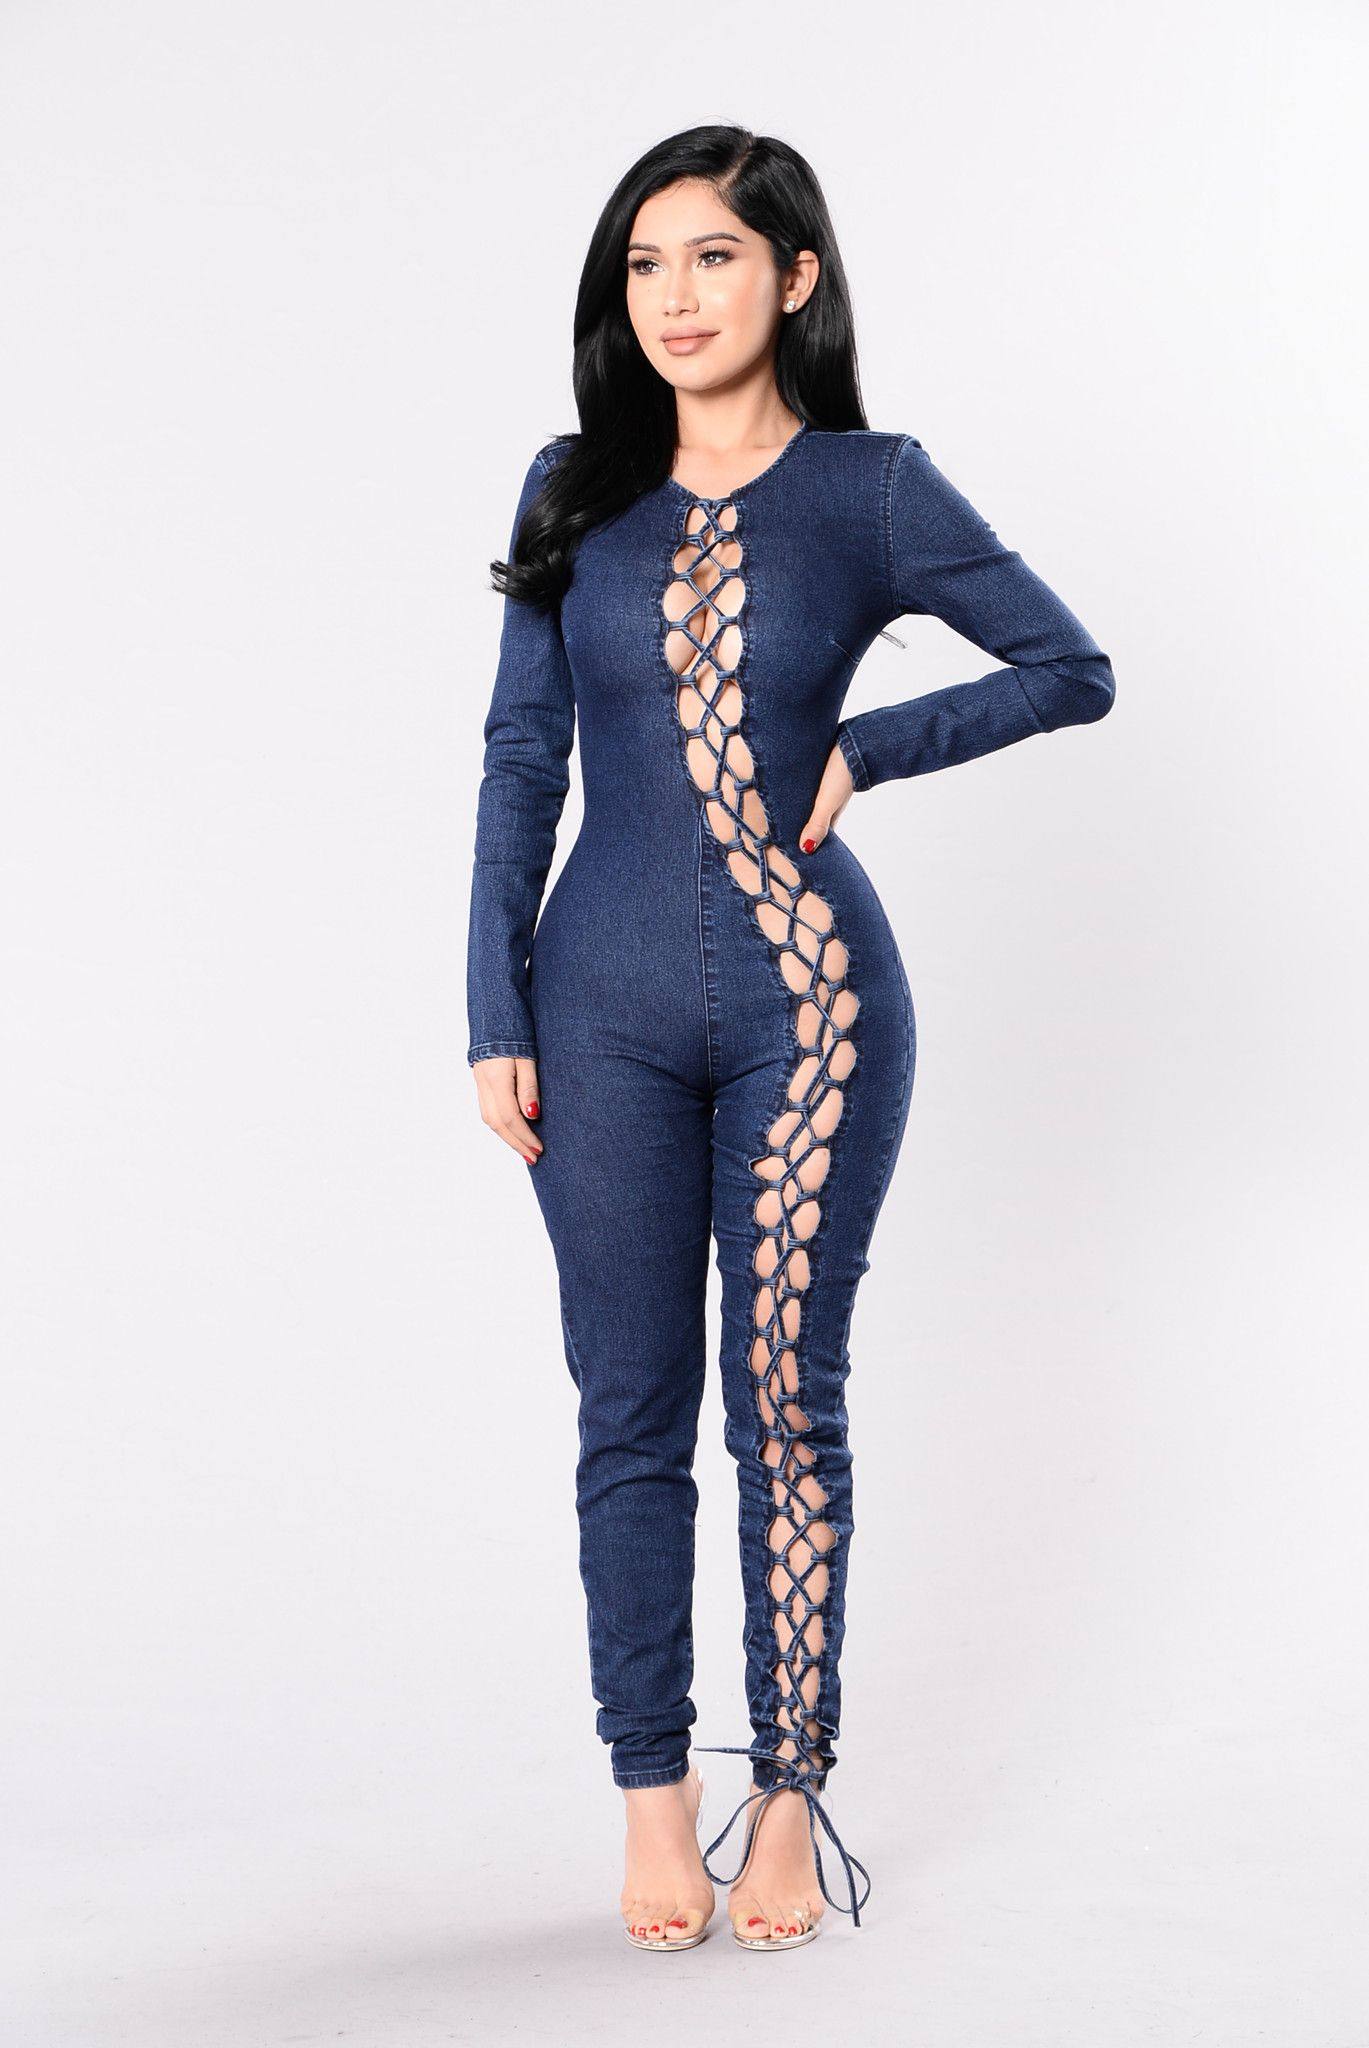 1e6ab7a69707 Available in Blue Stretch Denim Jumpsuit Full Body Lace Up Detail Long  Sleeve Back Zipper Closure 65% Cotton 33% Polyester 2% Spandex